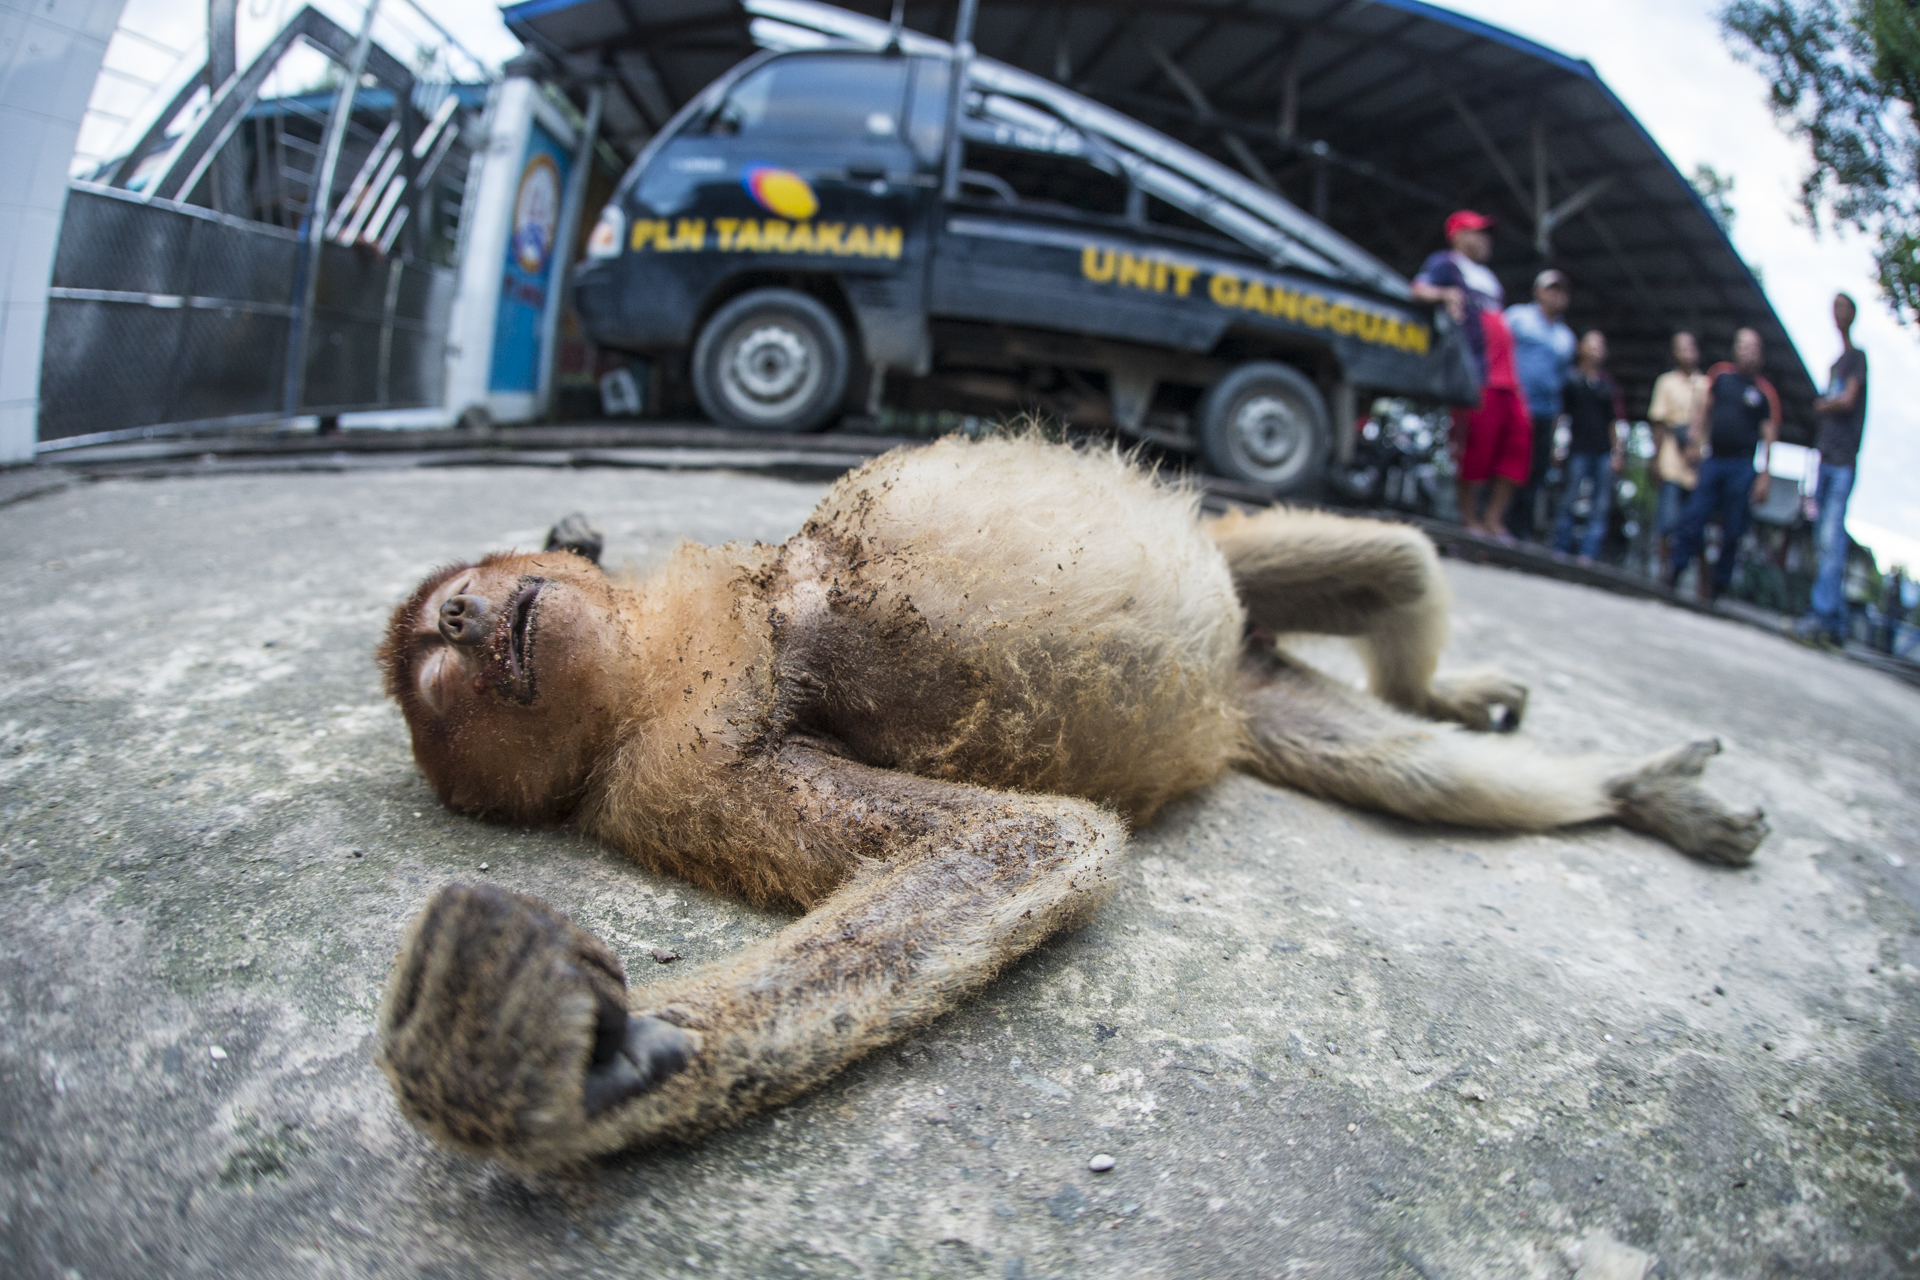 Monkeys are forced to venture into urban areas, this young monkey collided with an overhead power line at a shrimp hatchery.